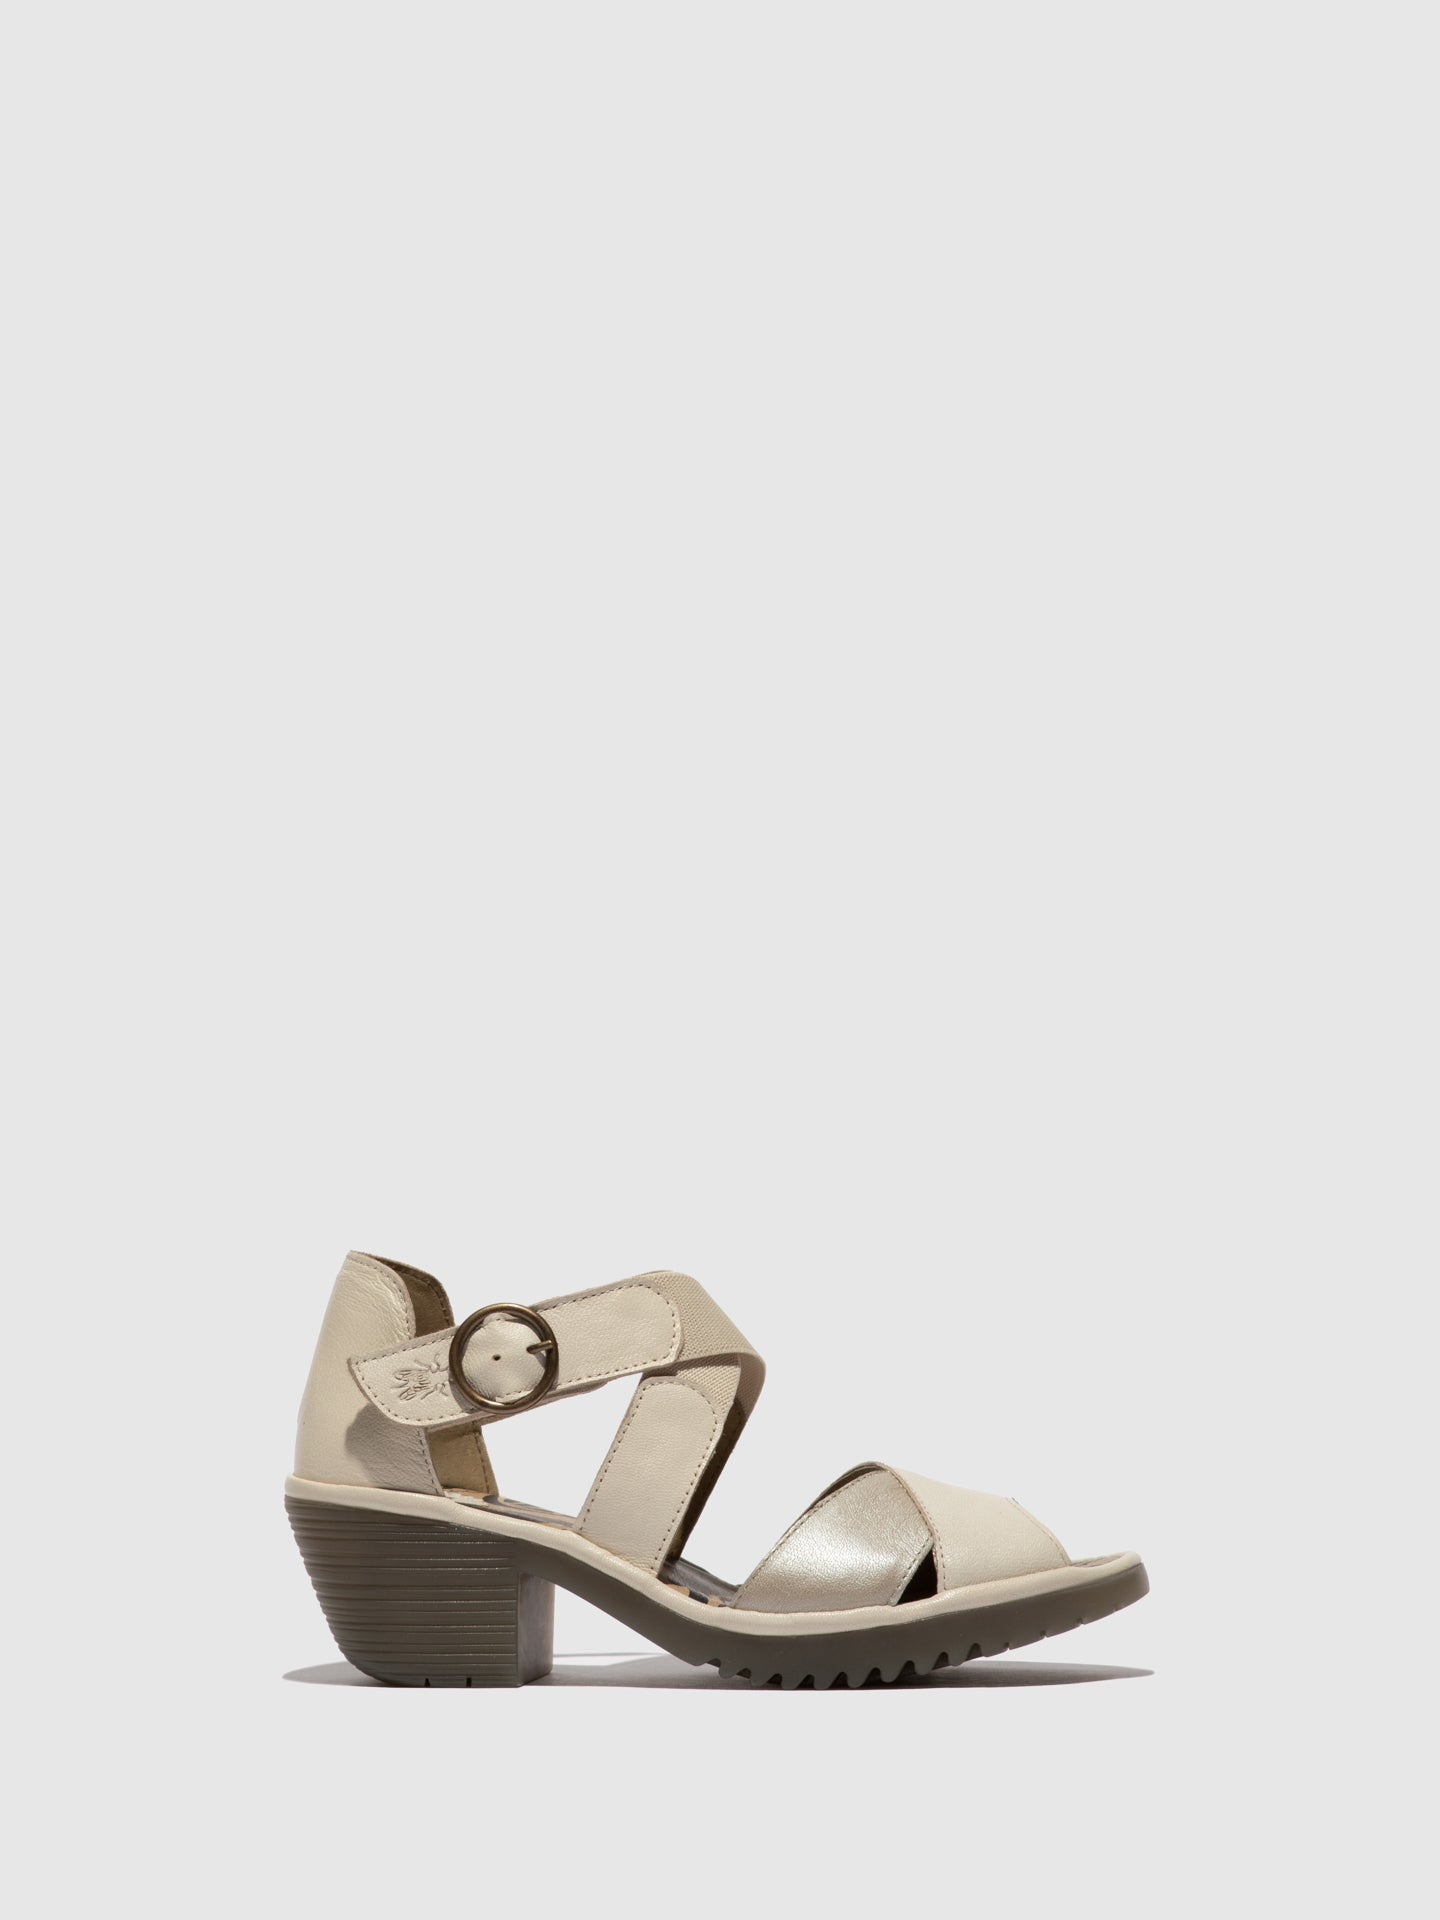 Fly London Crossover Sandals WAID291FLY MOUSSE/BORGOGNA OFFWHITE/SILVER